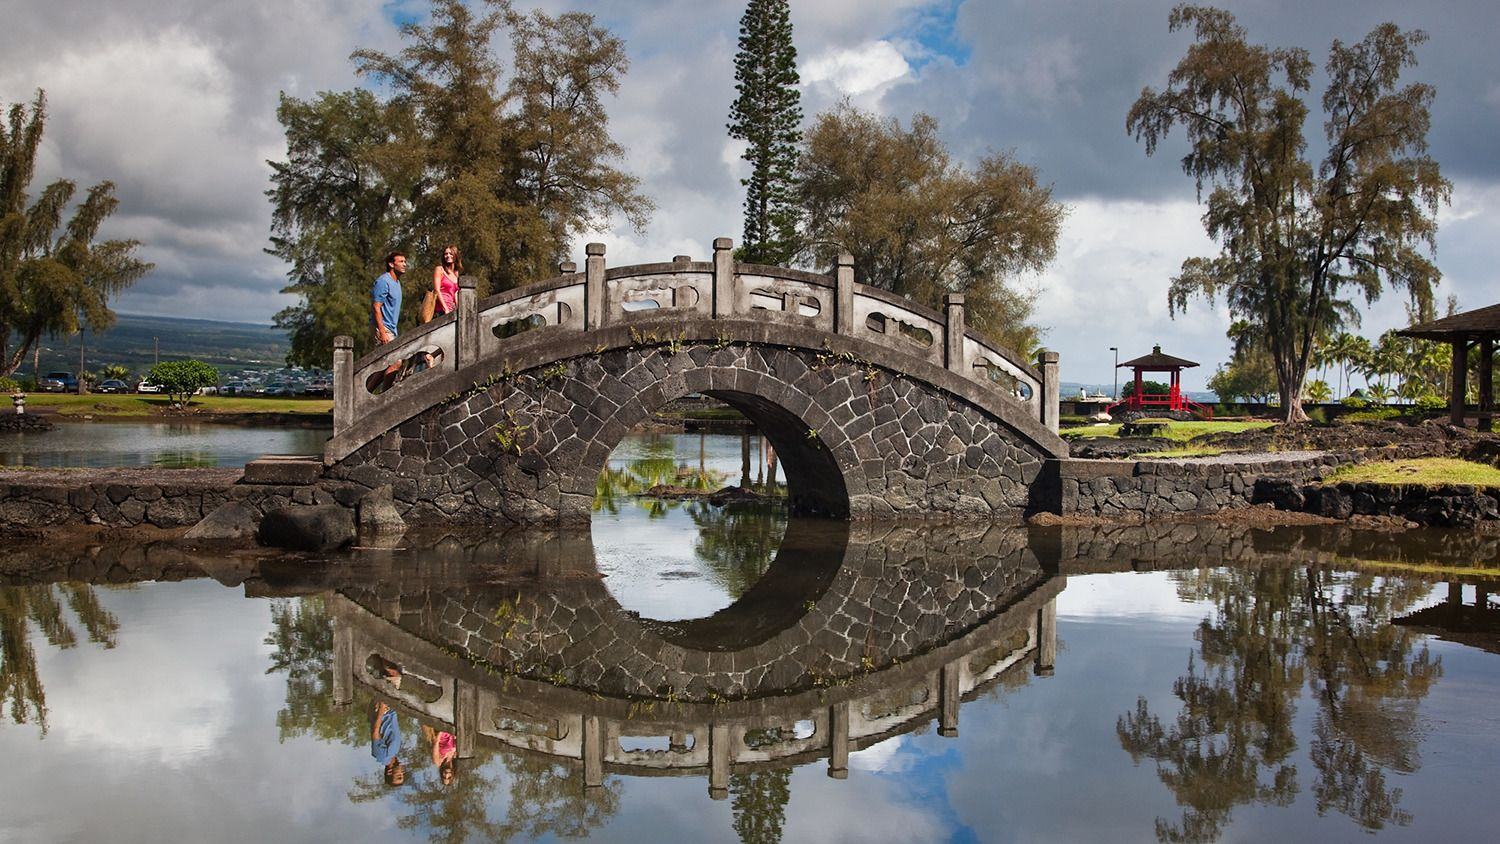 Bridge at Liliuokalani Park and Gardens in Oahu